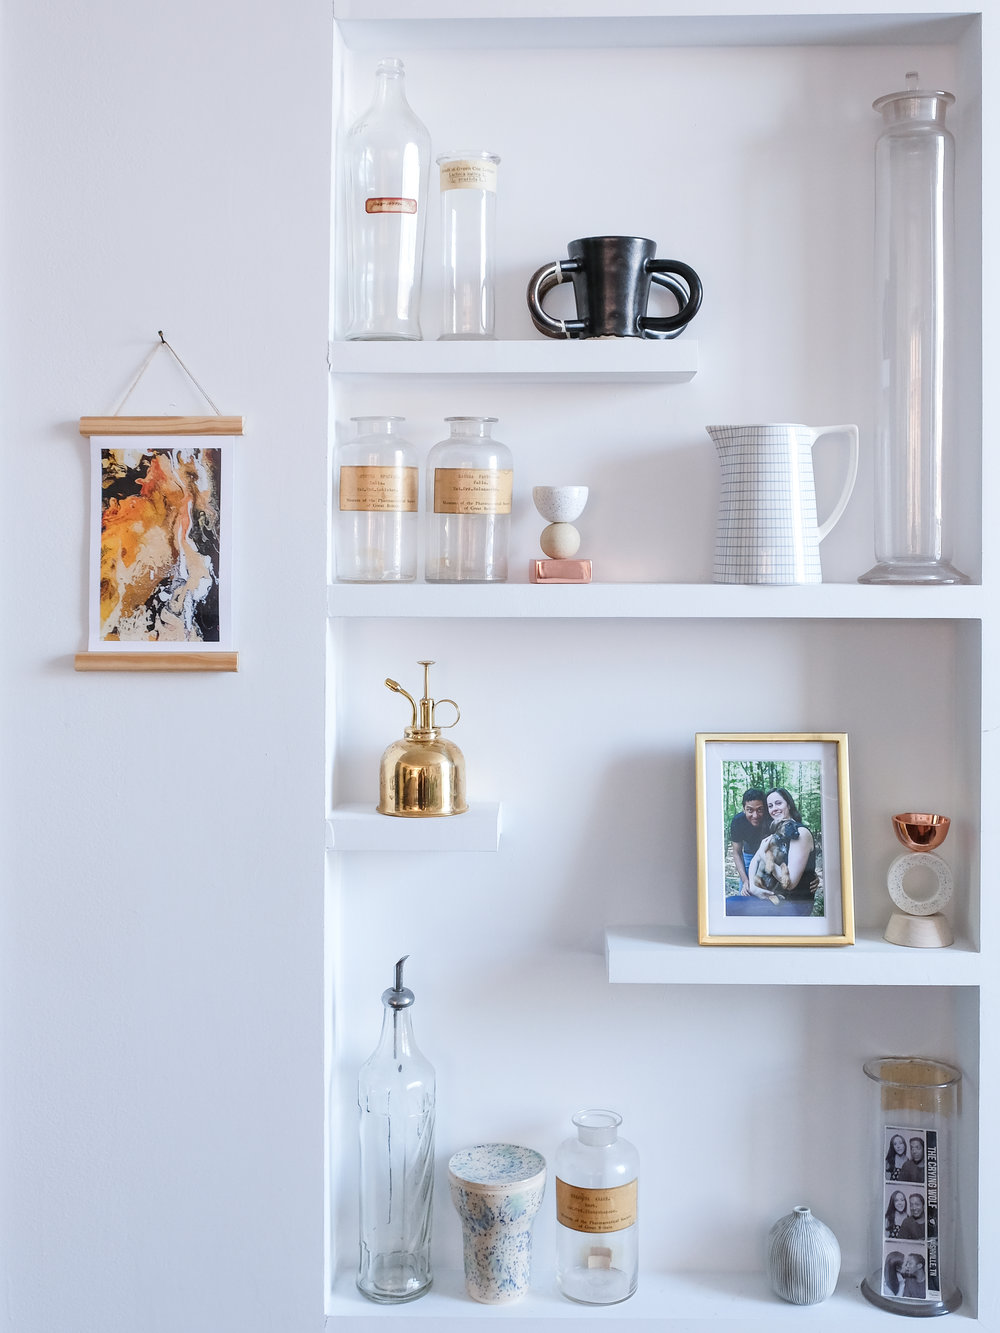 My kitchen display shelves at #BKaptstory. The totem candle holders here are modern accents that look good even without candles in them! ( Small  and  Large )